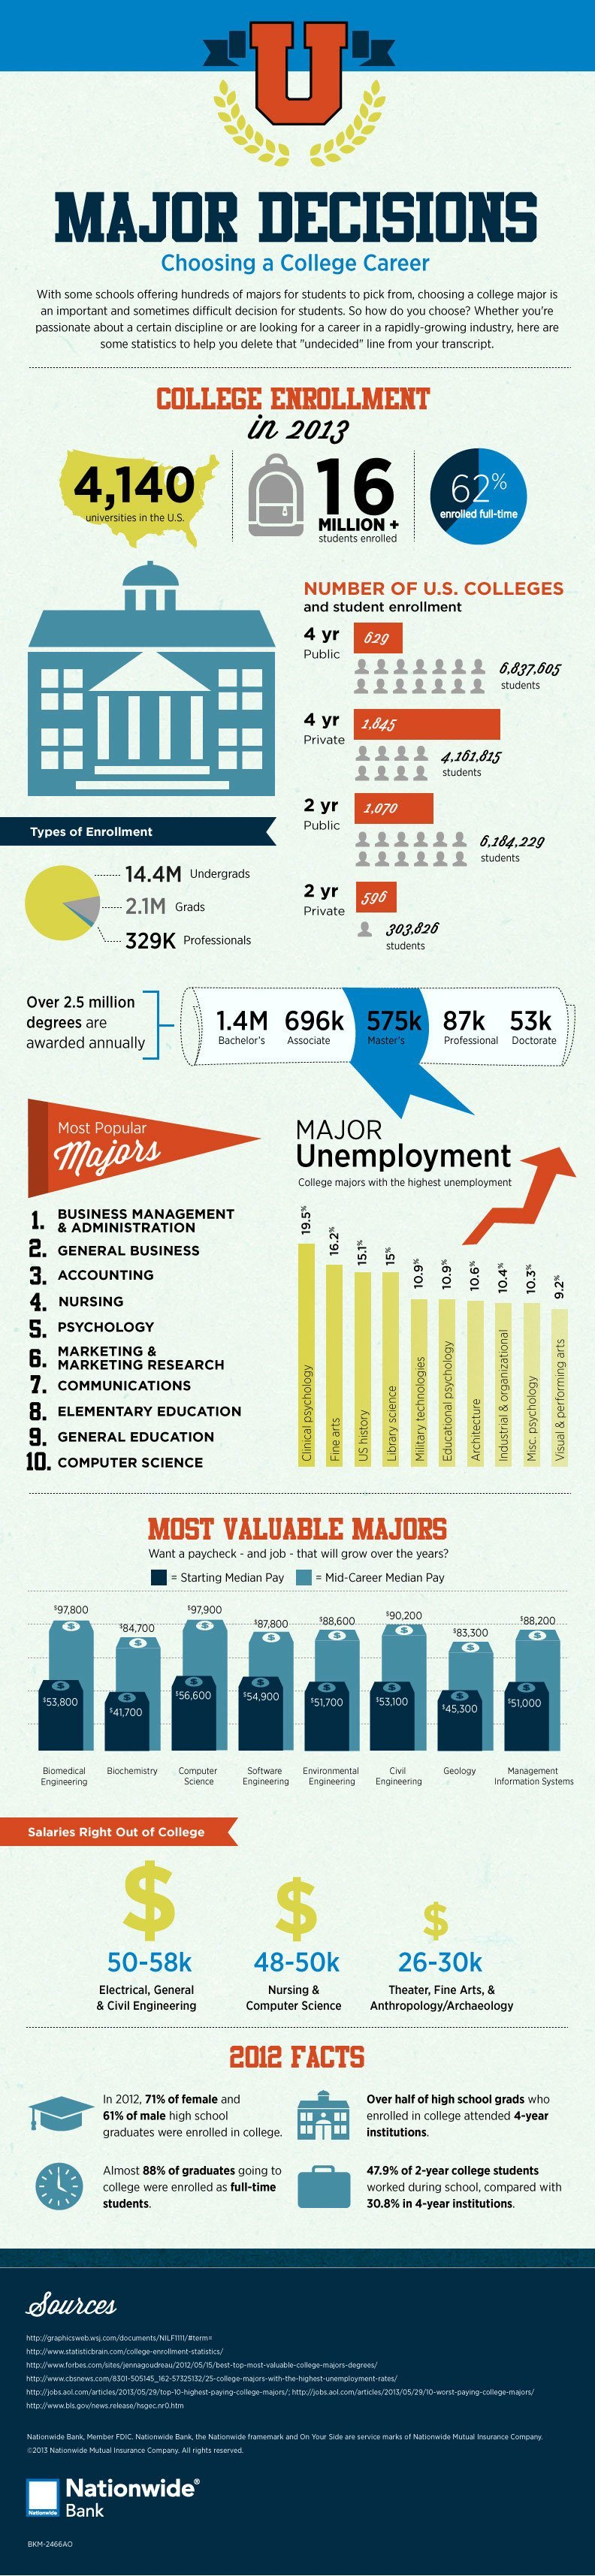 College majors data and statistics infographic.